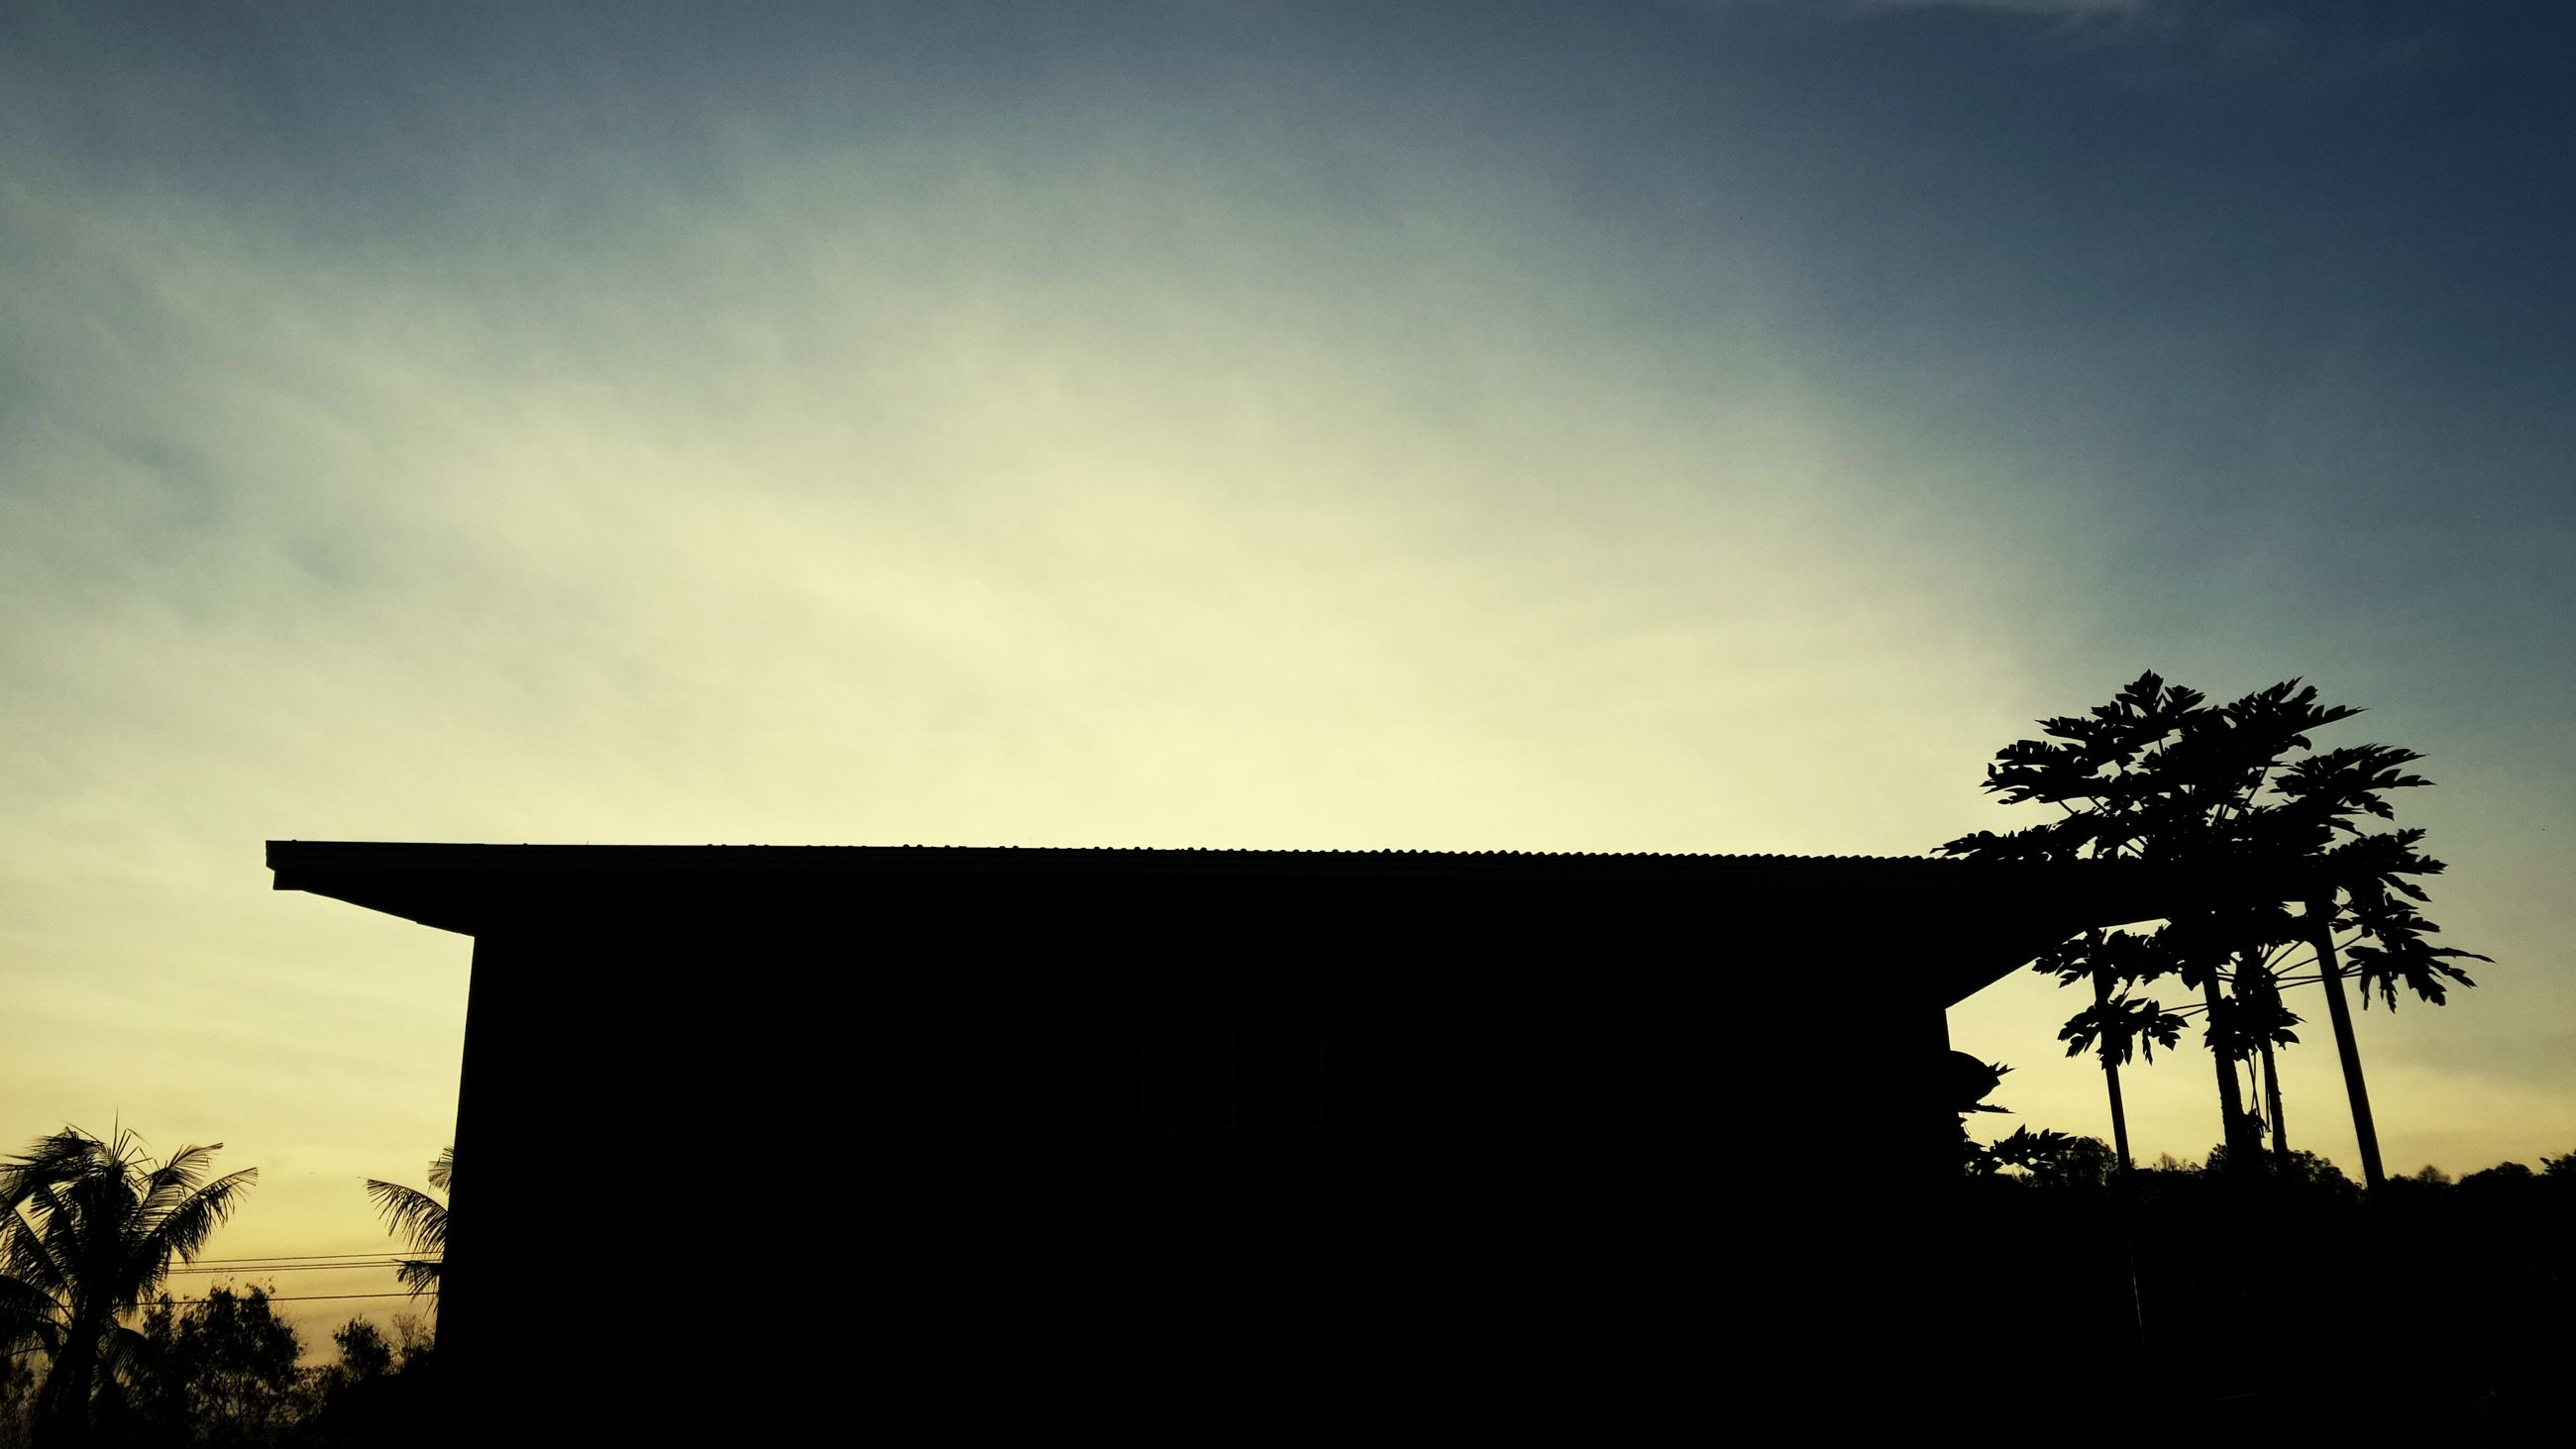 silhouette, low angle view, sky, sunset, tree, built structure, architecture, building exterior, cloud - sky, cloud, tranquility, nature, dusk, beauty in nature, copy space, scenics, house, outdoors, tranquil scene, no people